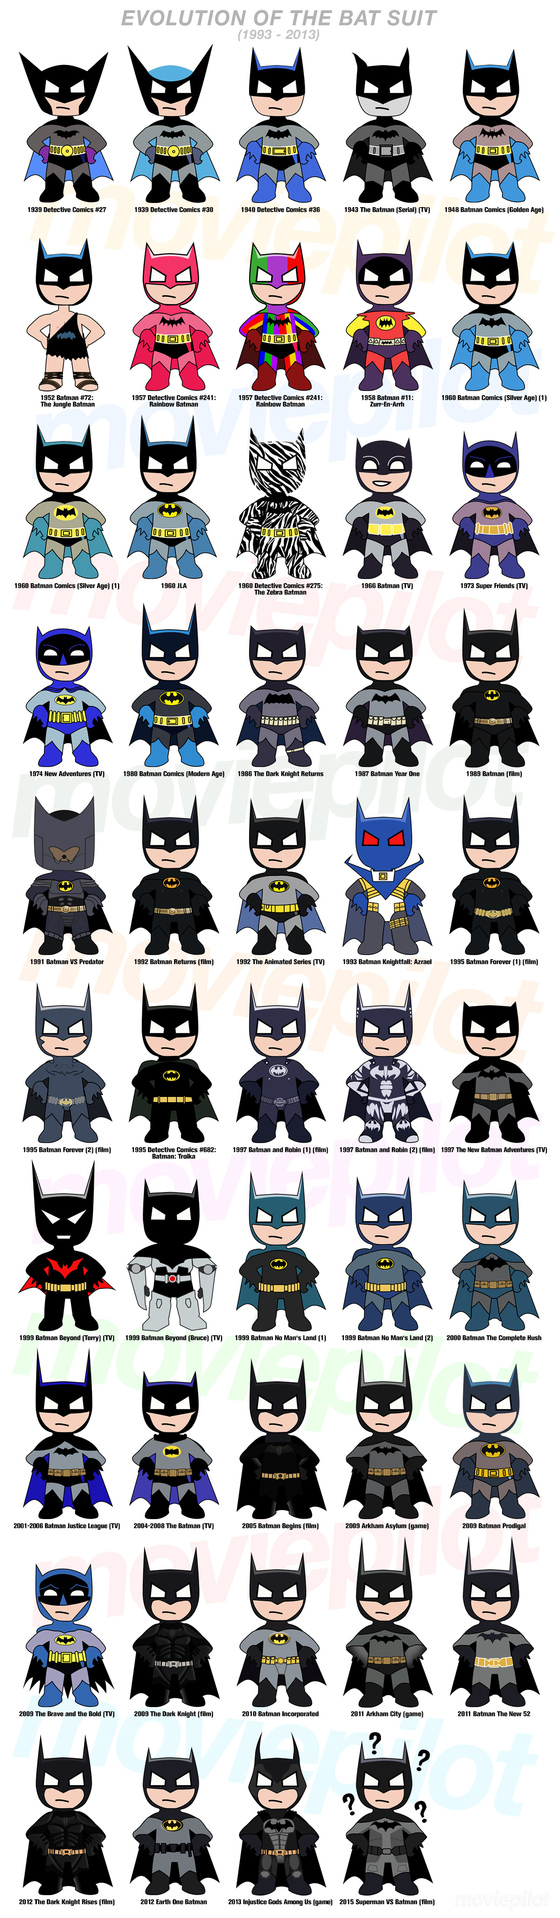 INFOGRAPHIC: The Evolution of the Batsuit | Moviepilot: New Stories for Upcoming Movies